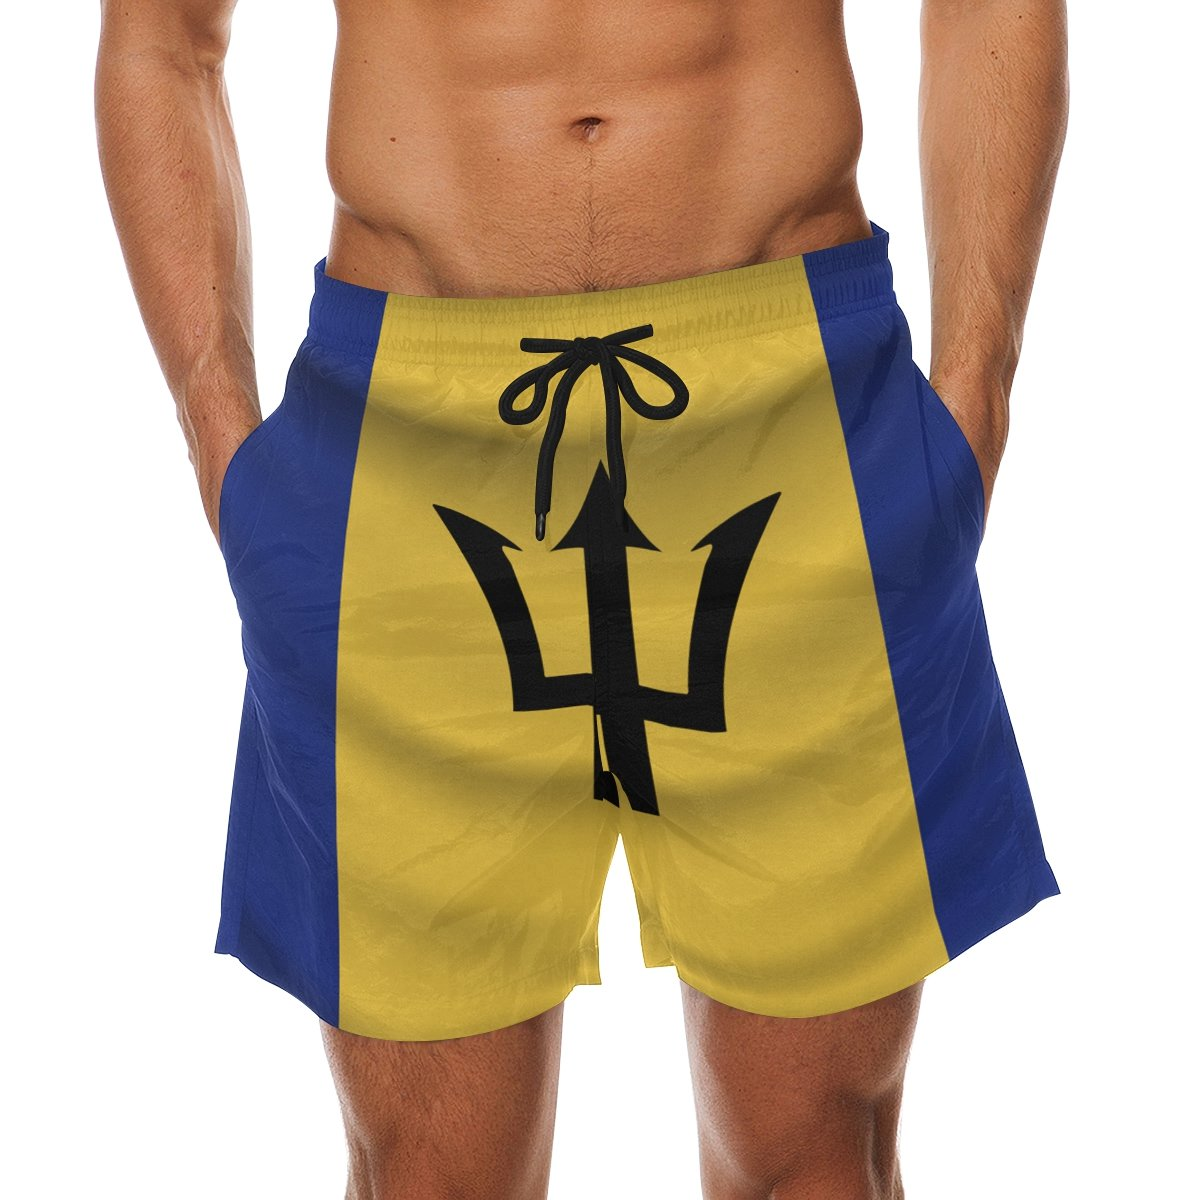 CoolPrintAll Barbados Flag Men's Swim Trunks Beach Shorts with Pockets